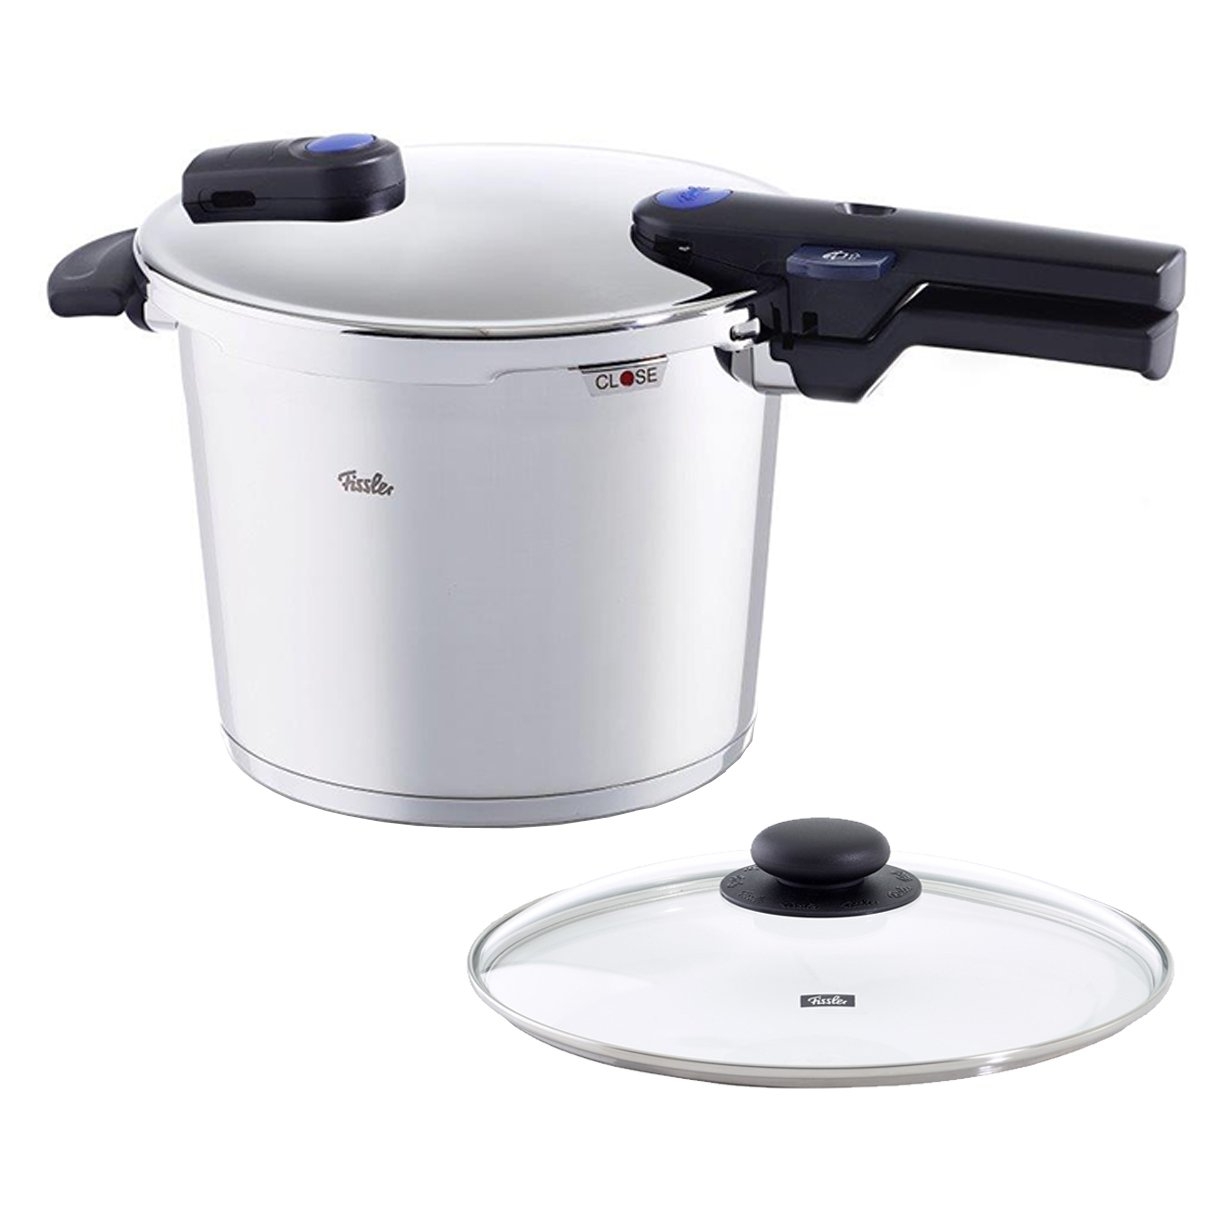 Fissler 6.4 quart Vitaquick Pressure Cooker with Glass Lid Set